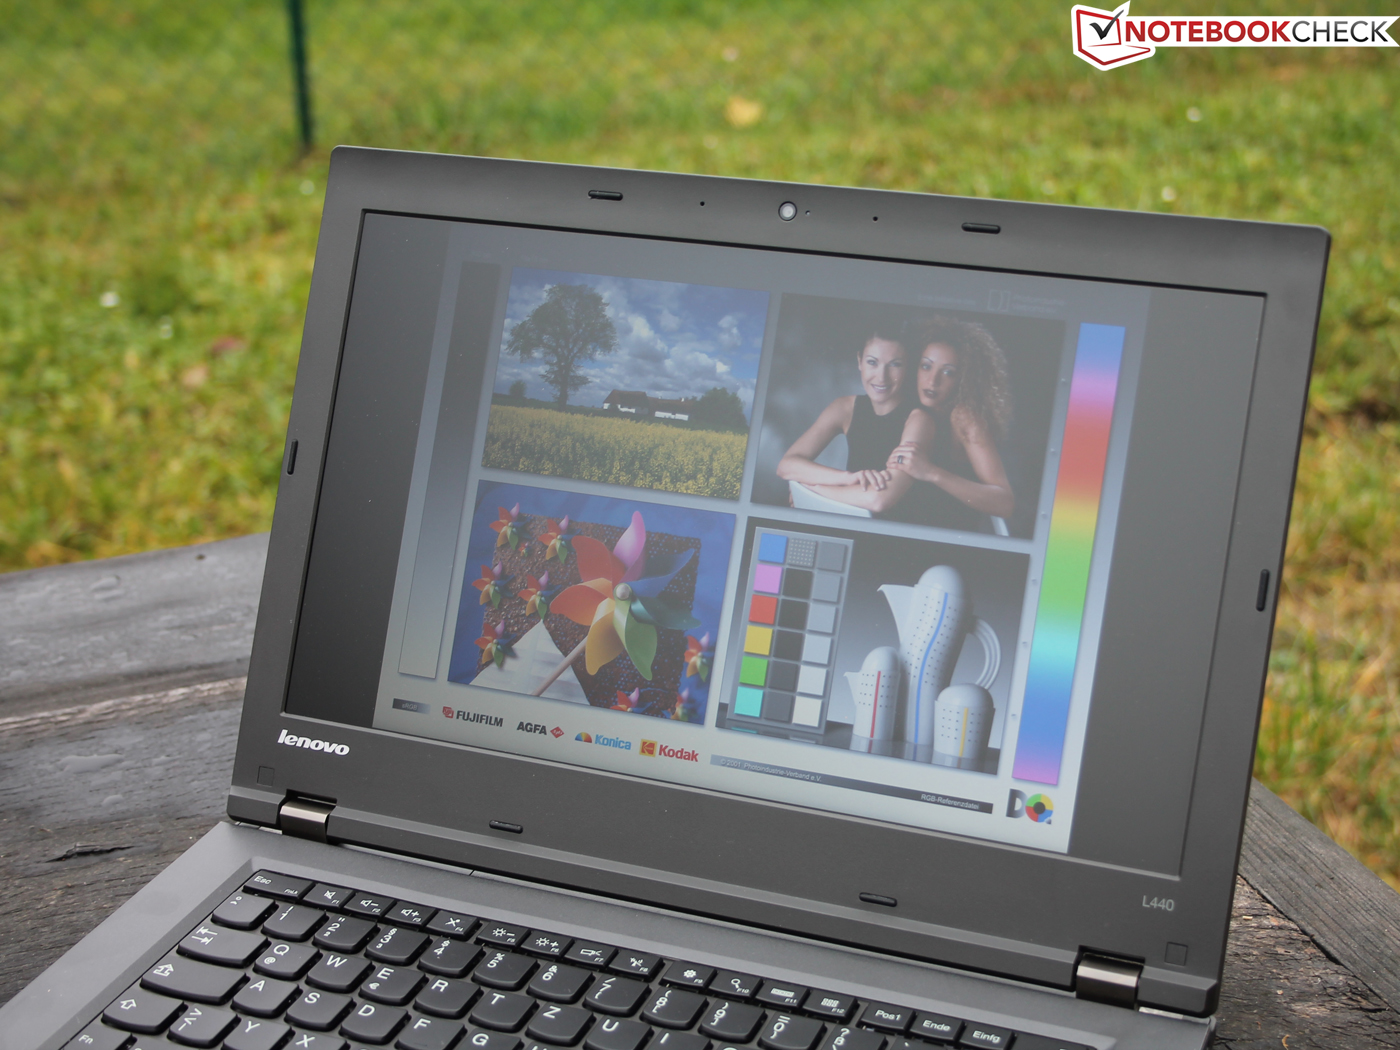 Lenovo ThinkPad L440 20AT004QGE Notebook Review Update